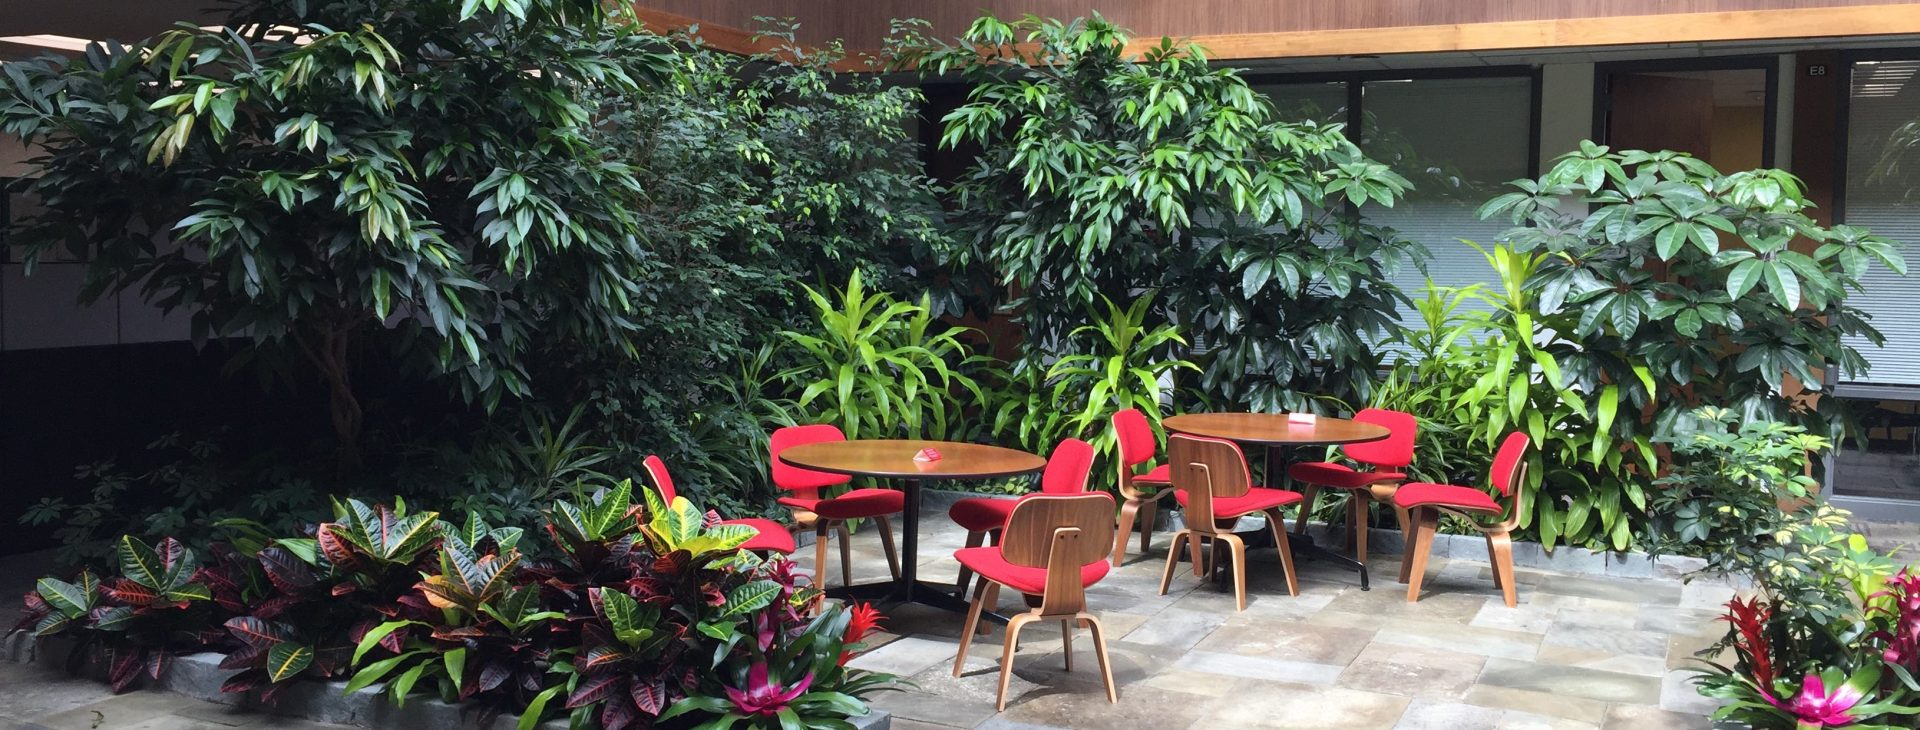 Stunning lobbies, offices, and public spaces showcase your business